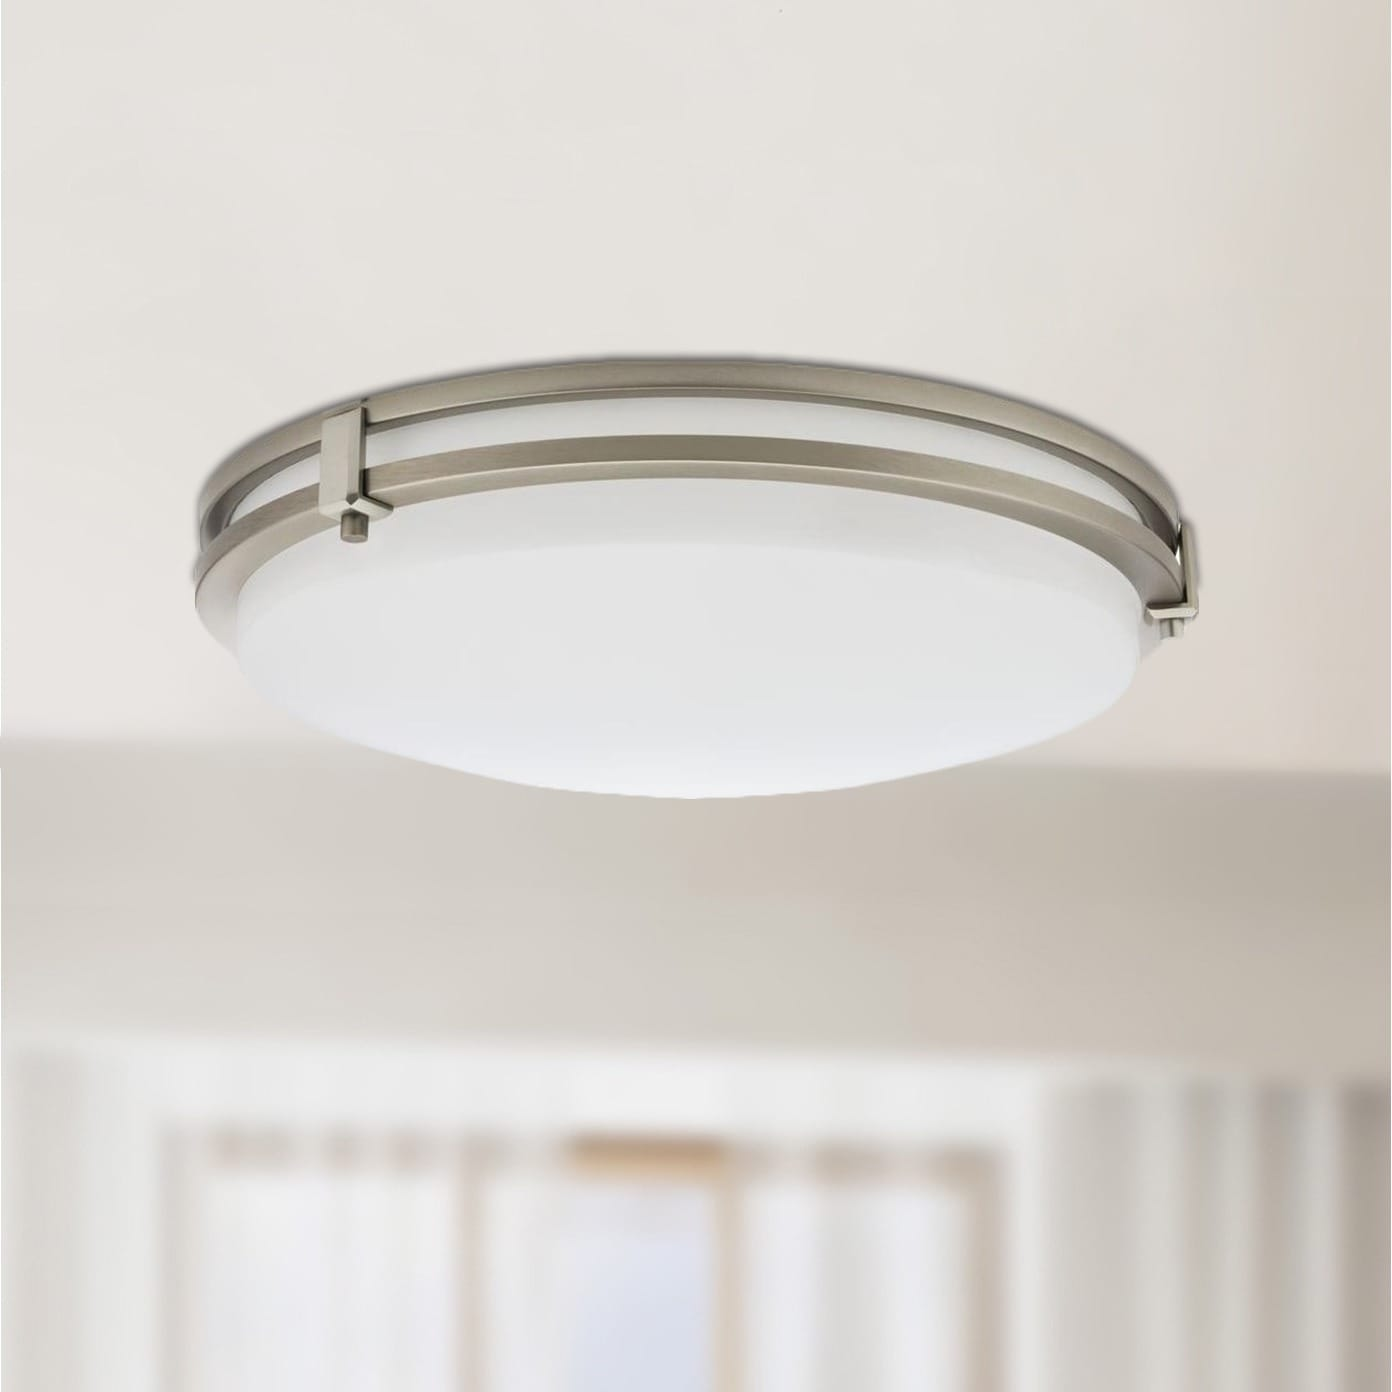 lithonia light lay recessed led gtled in troffer white lighting products x ft